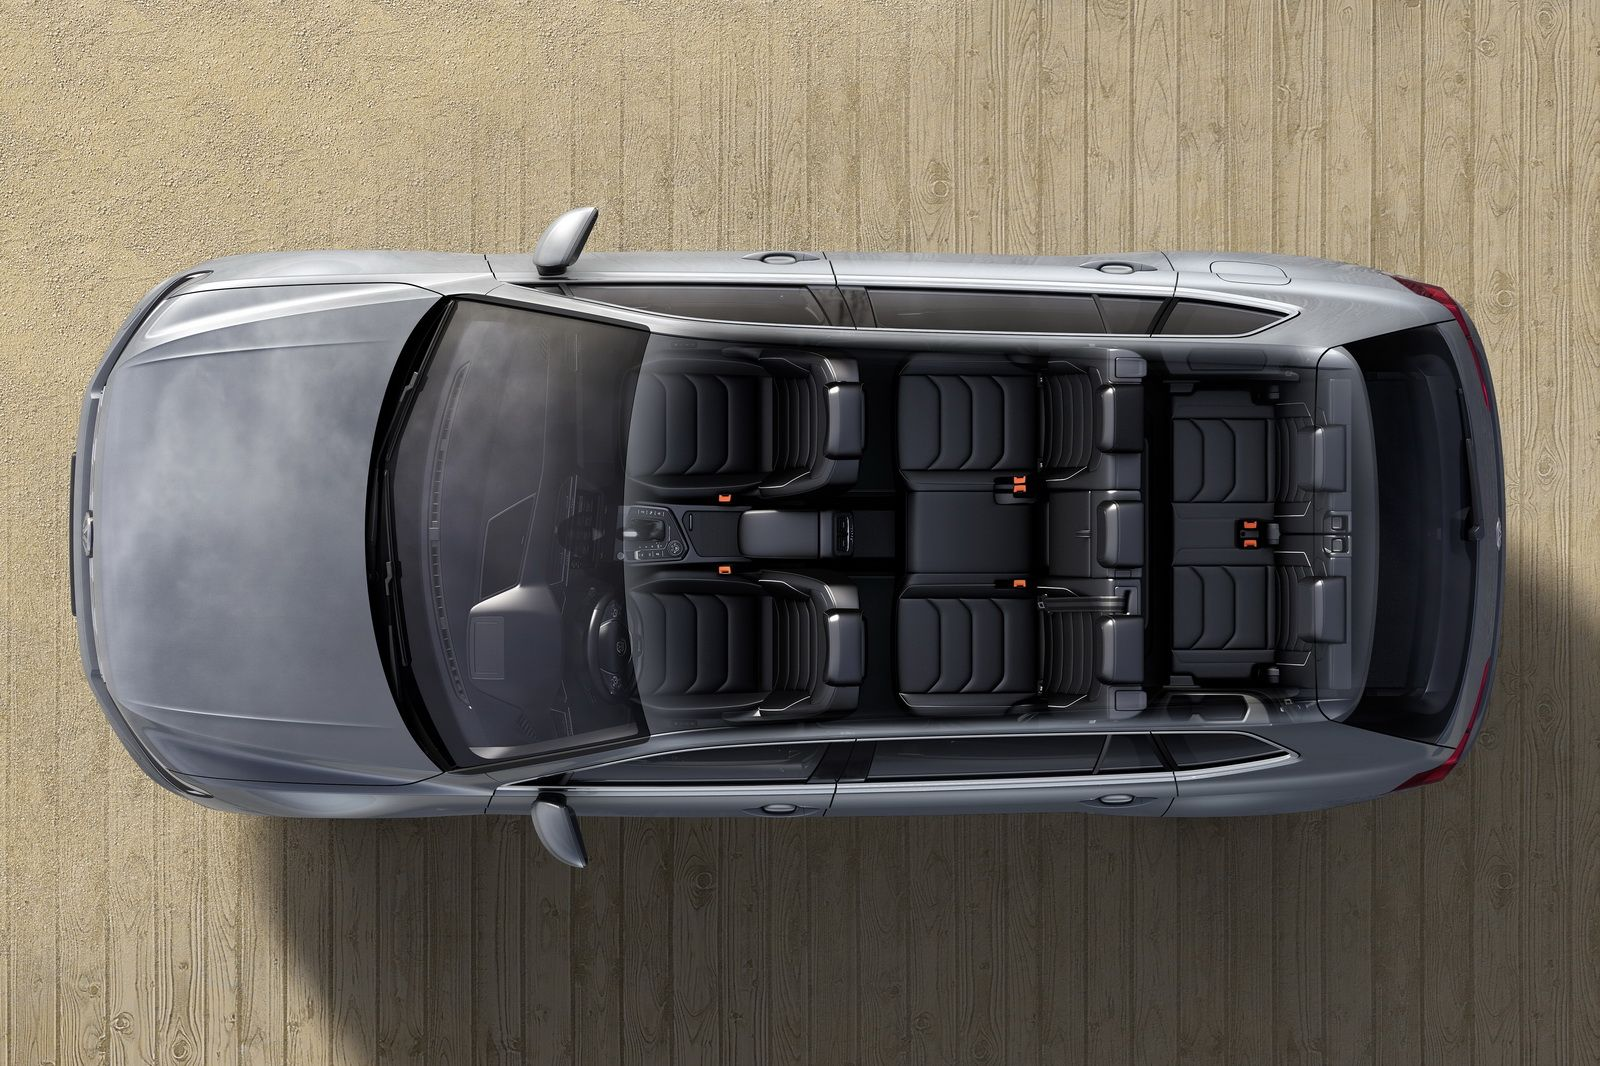 Europe S New Vw Tiguan Allspace With 7 Seats Detailed Ahead Of Geneva Carscoops Volkswagen New Cars Apple Car Play